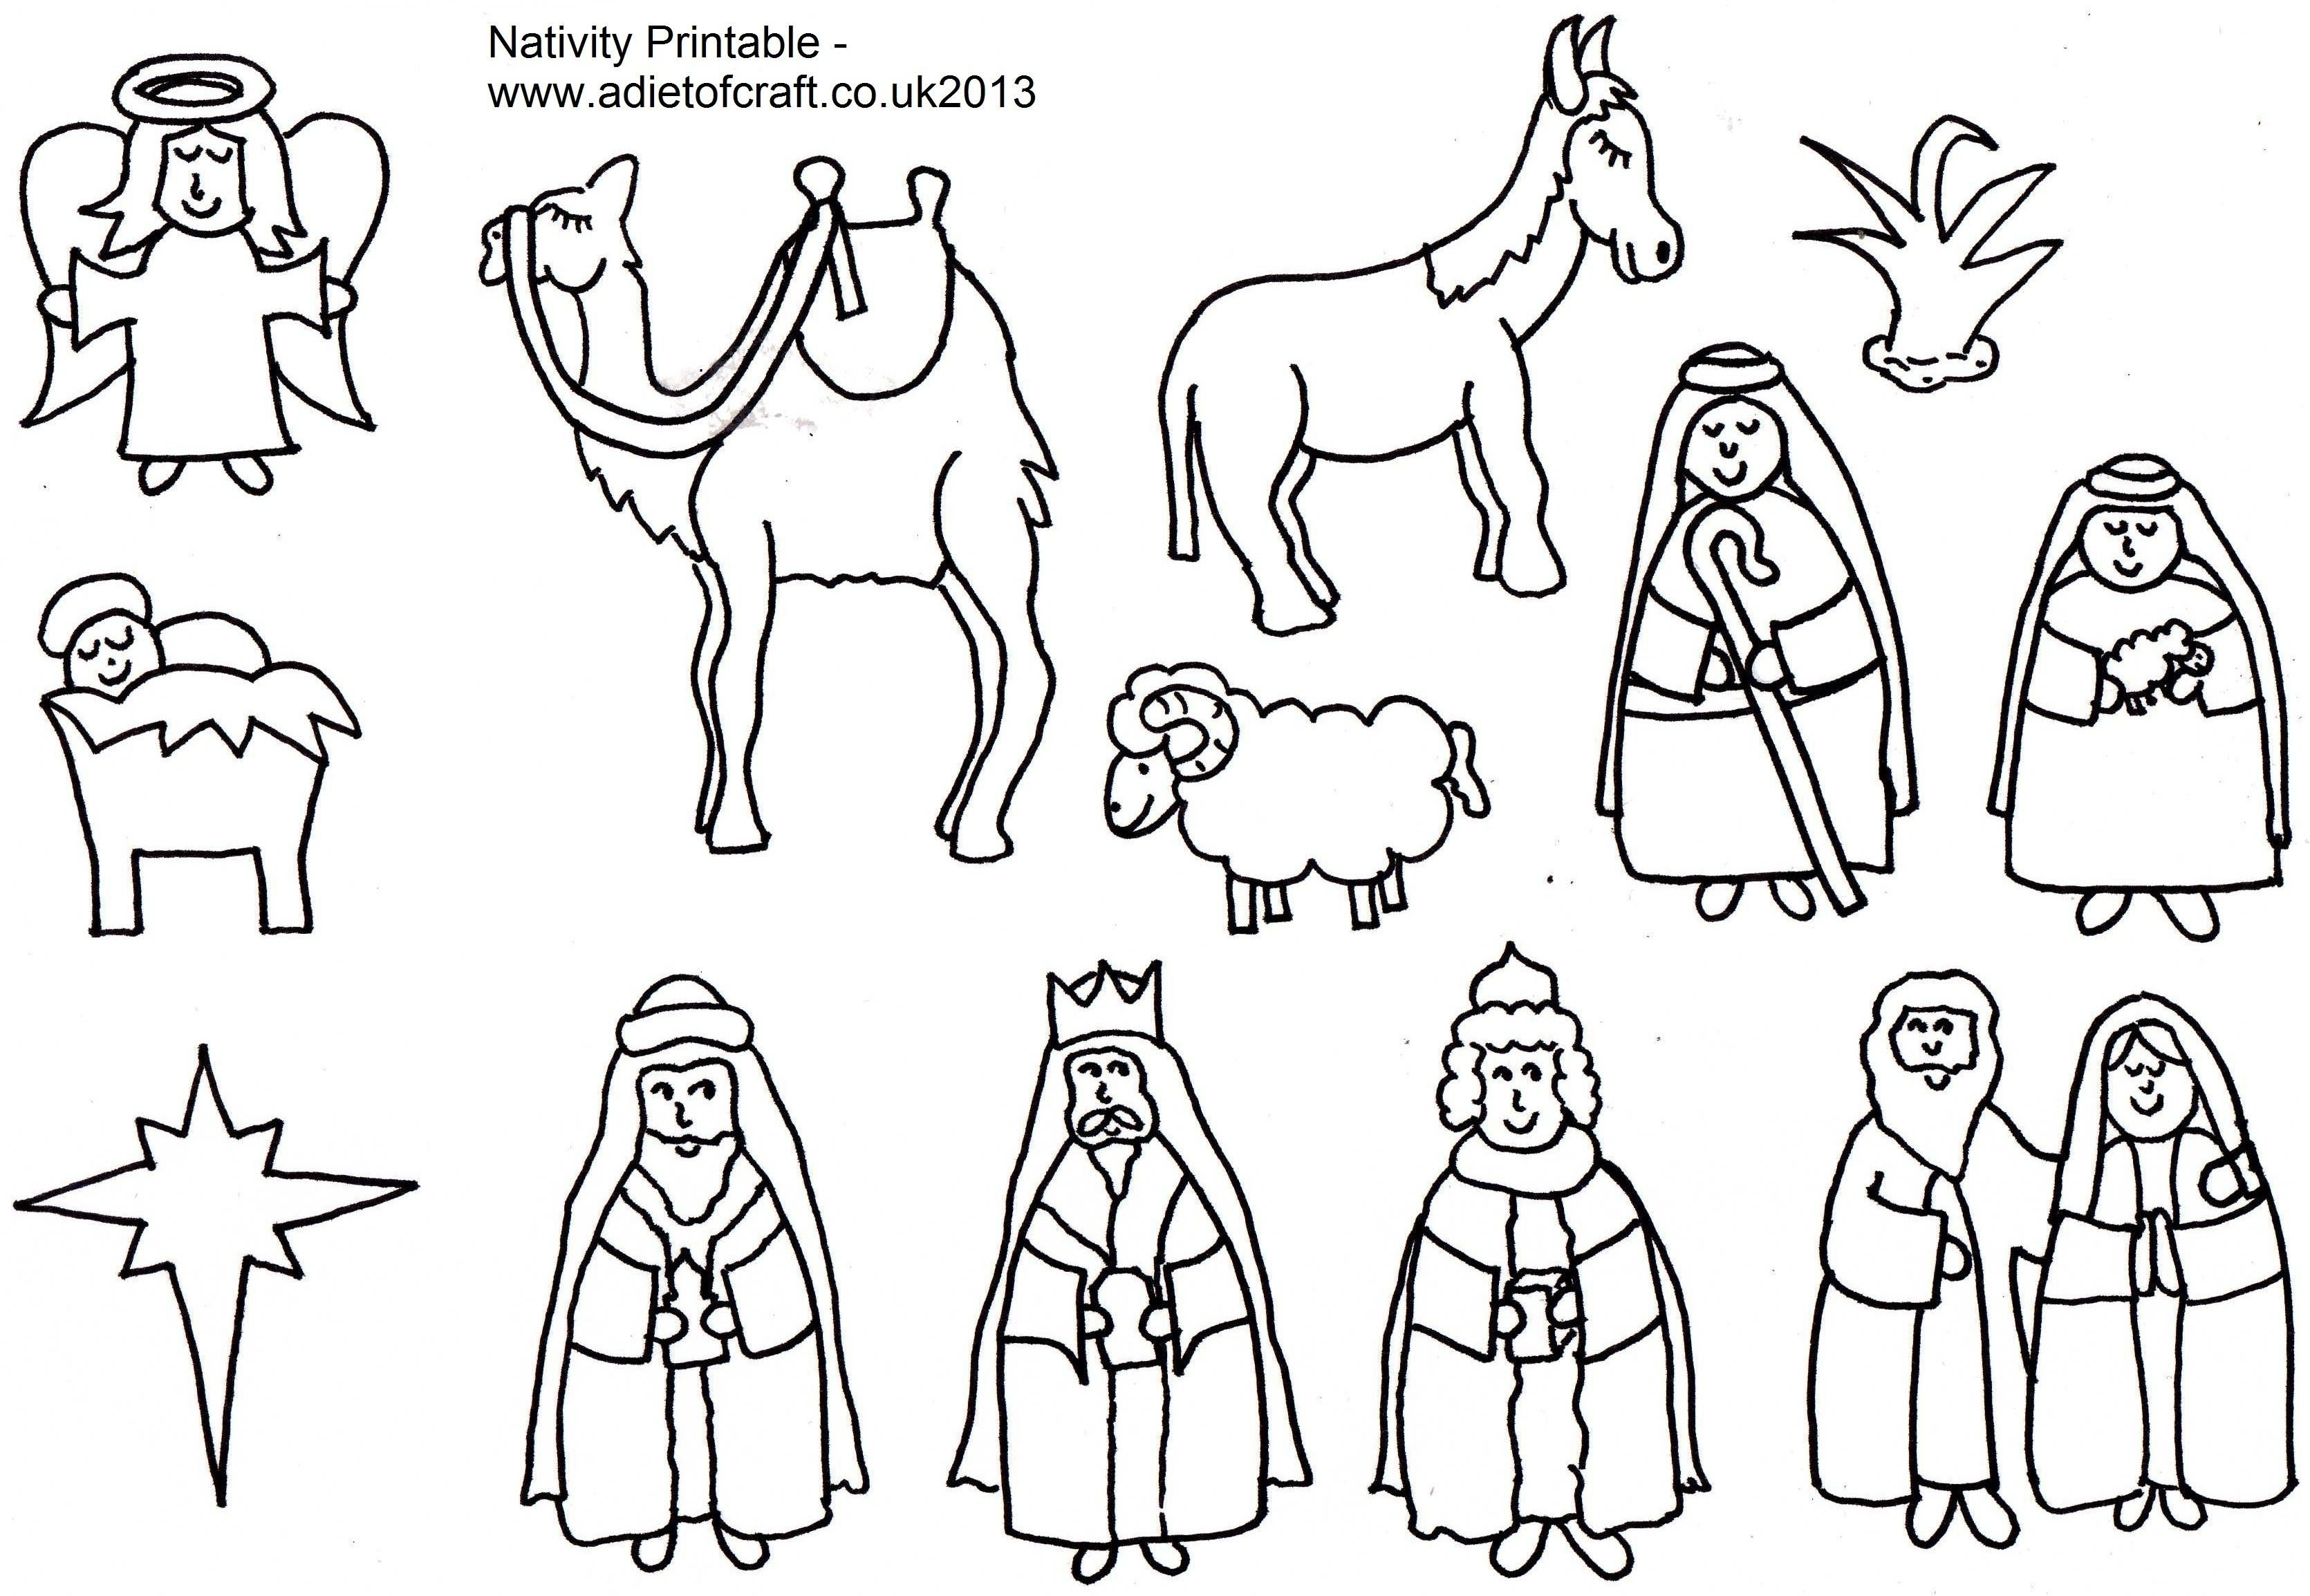 Adult Coloring Pages Of The Nativity Free In Nativity Coloring Pages - Free Printable Pictures Of Nativity Scenes